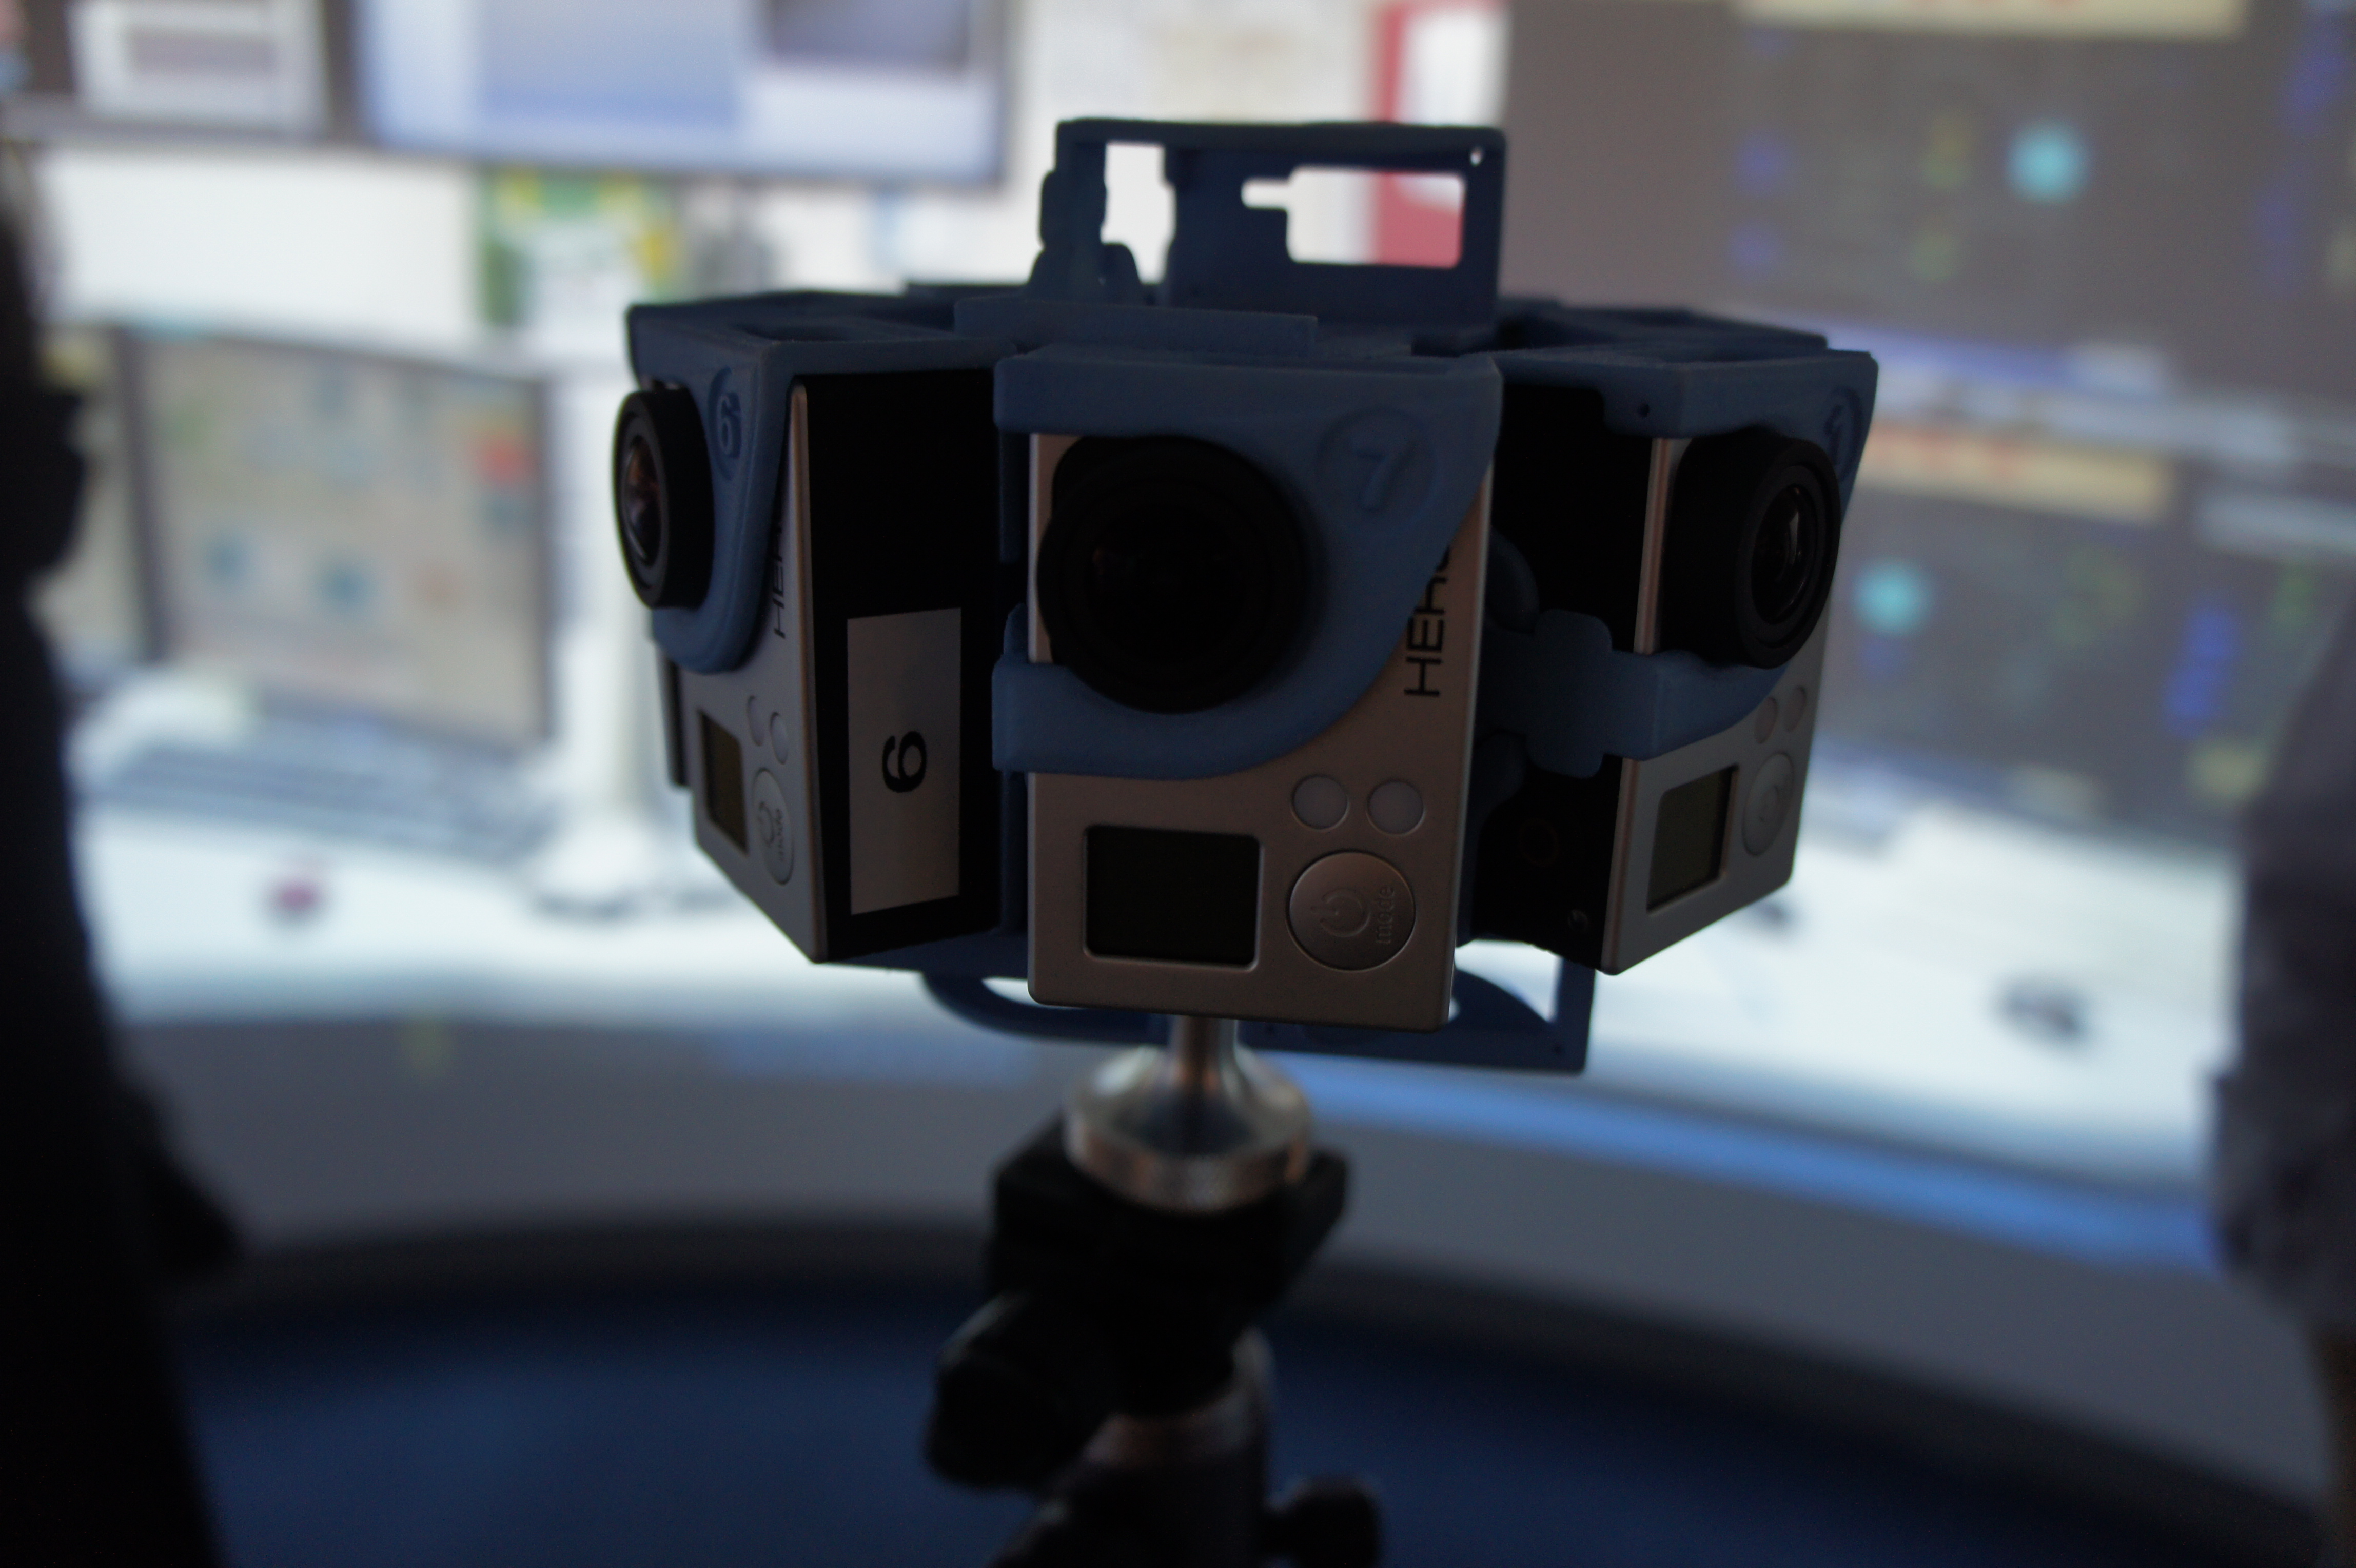 GoPro cameras used to create a 360 degree immersive experience.